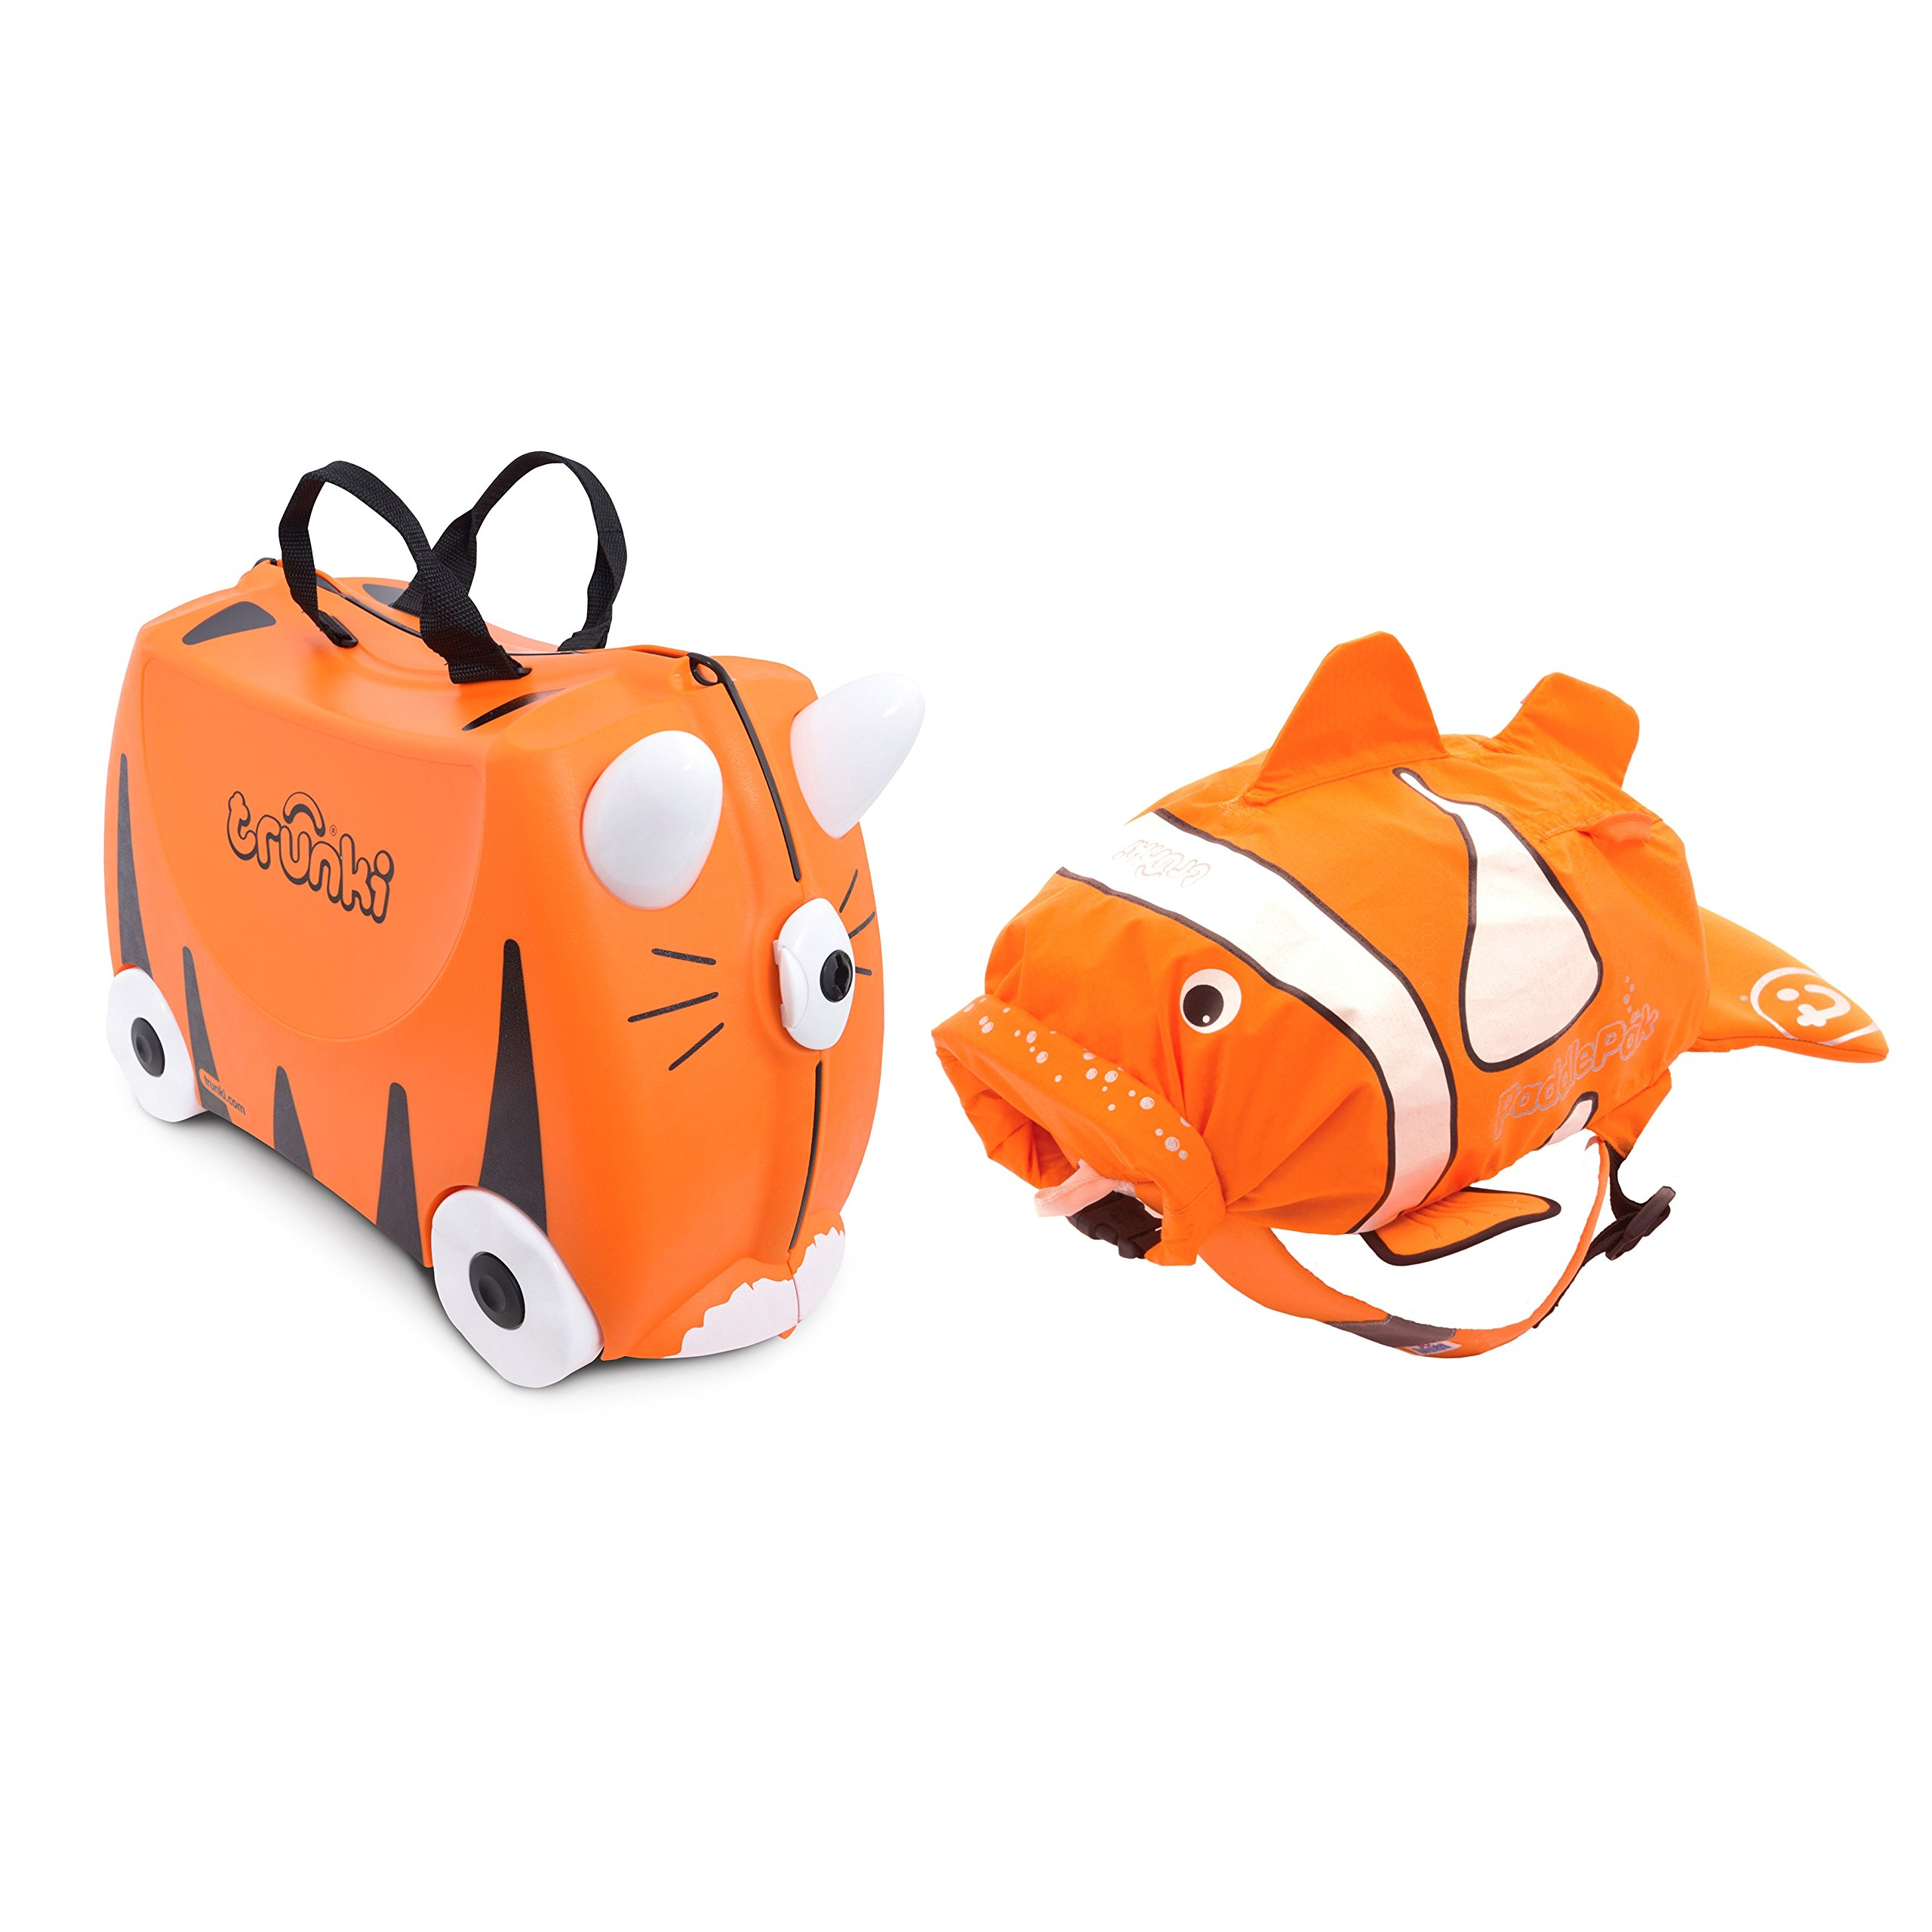 7b91a7f43 Trunki Set Suitcase and Backpack - As Seen on TV UK products